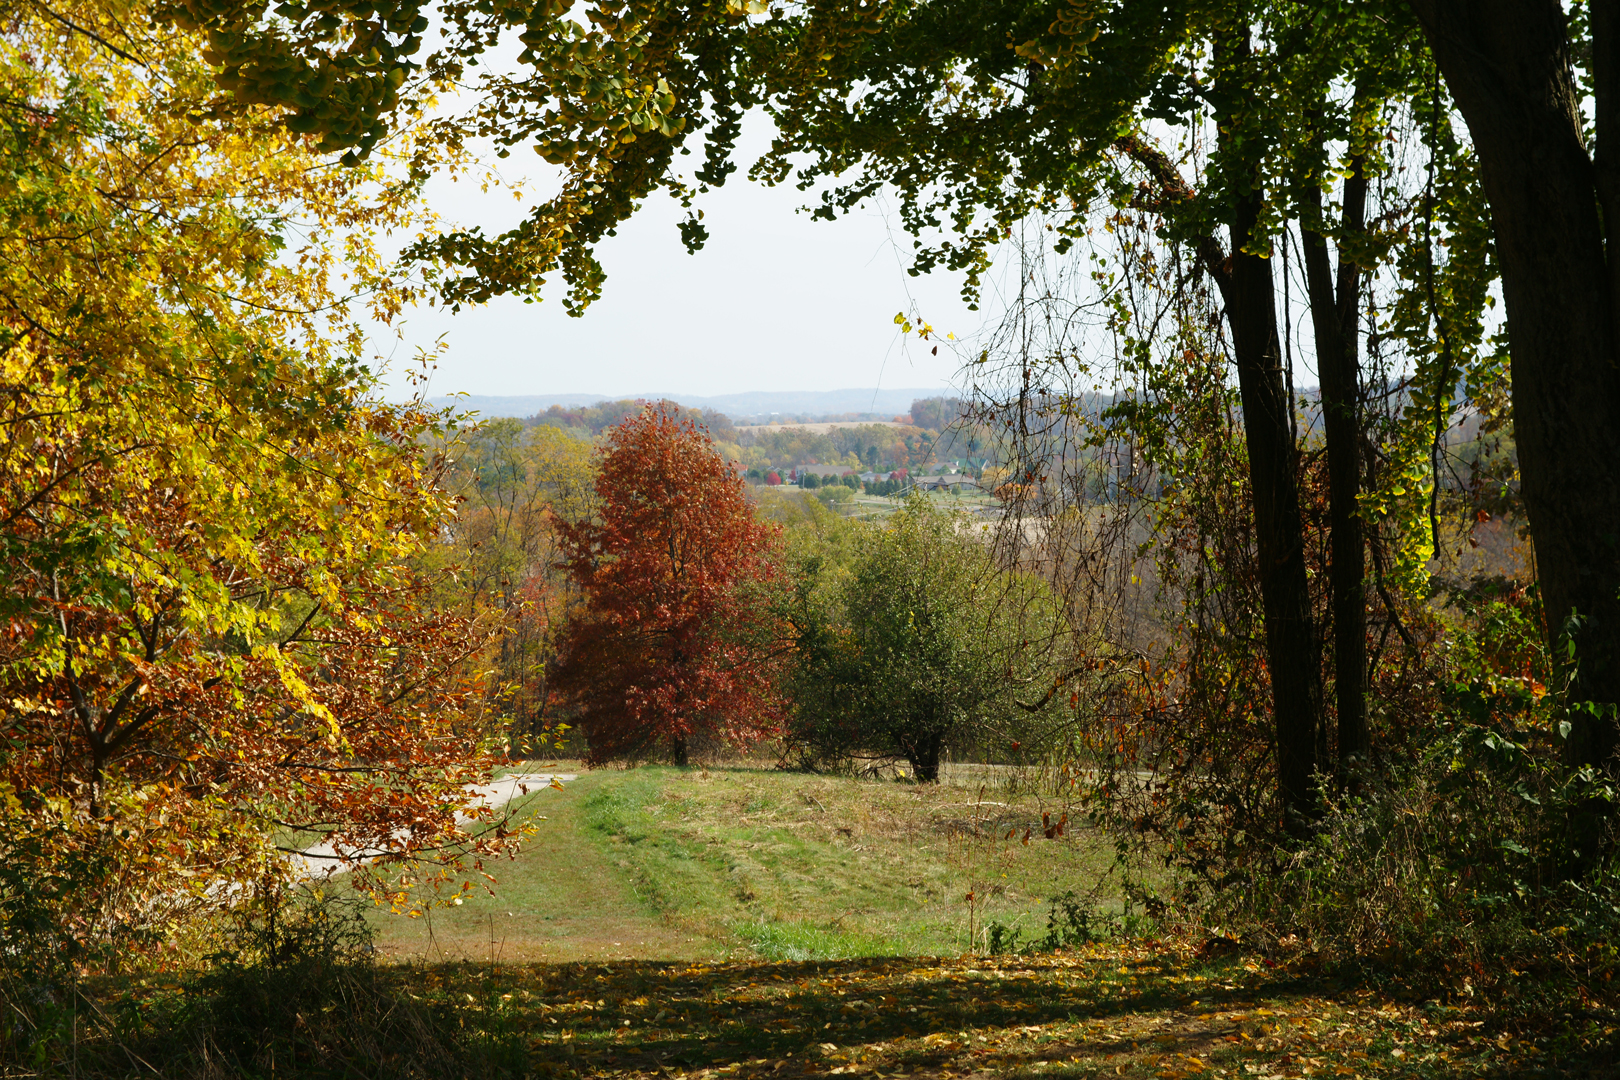 Autumn view looking down from the top of the Ridge Trail at Chestnut Ridge. Photo by Mike Fetherolf